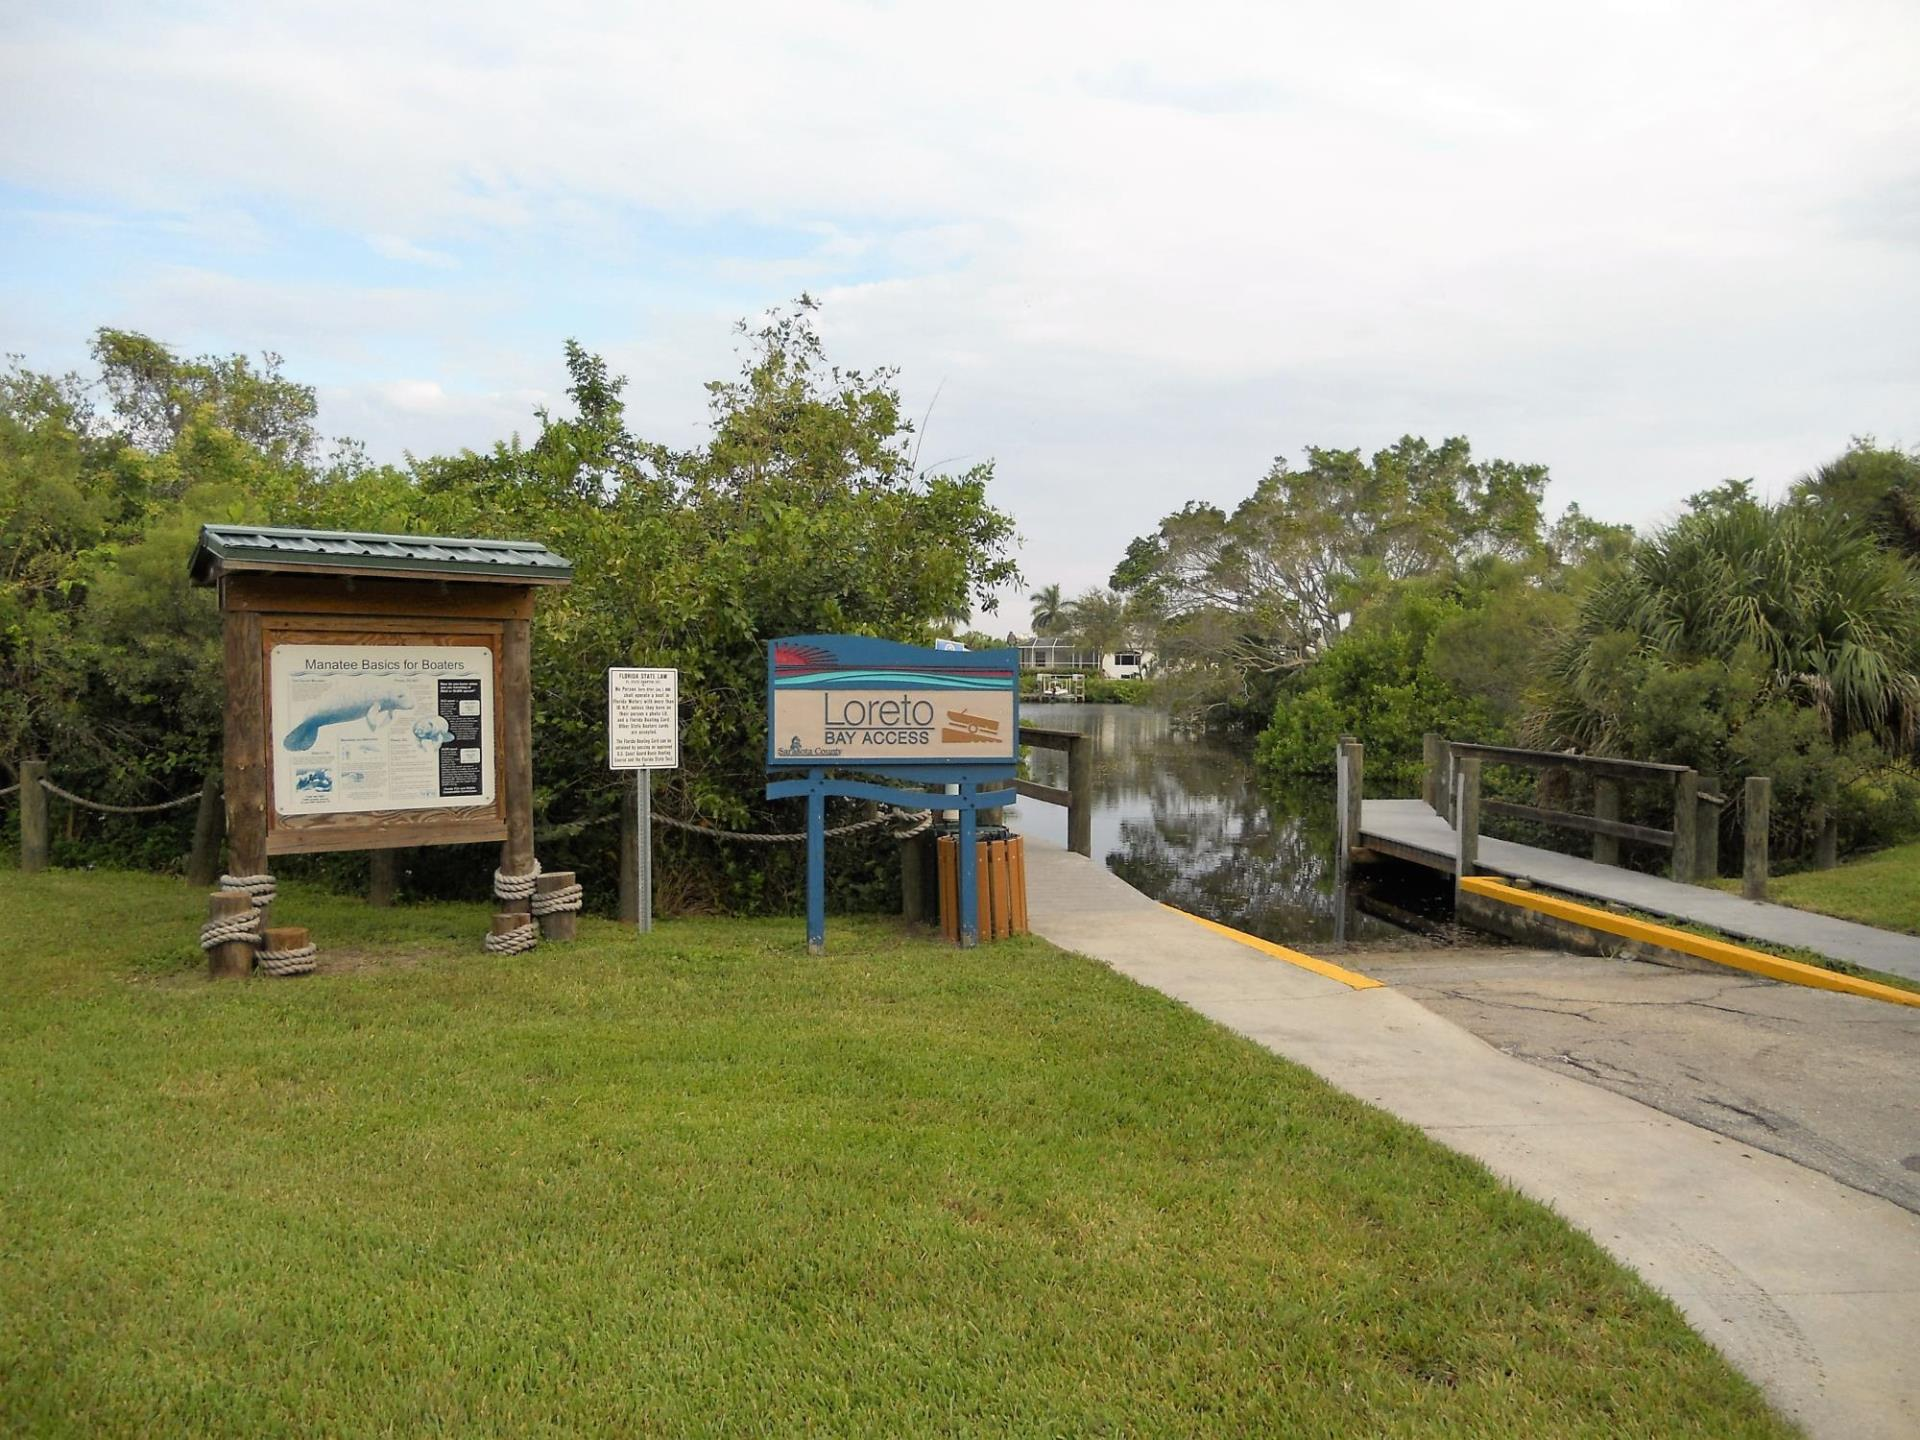 Loreto Bay Access_park and interpretive signs